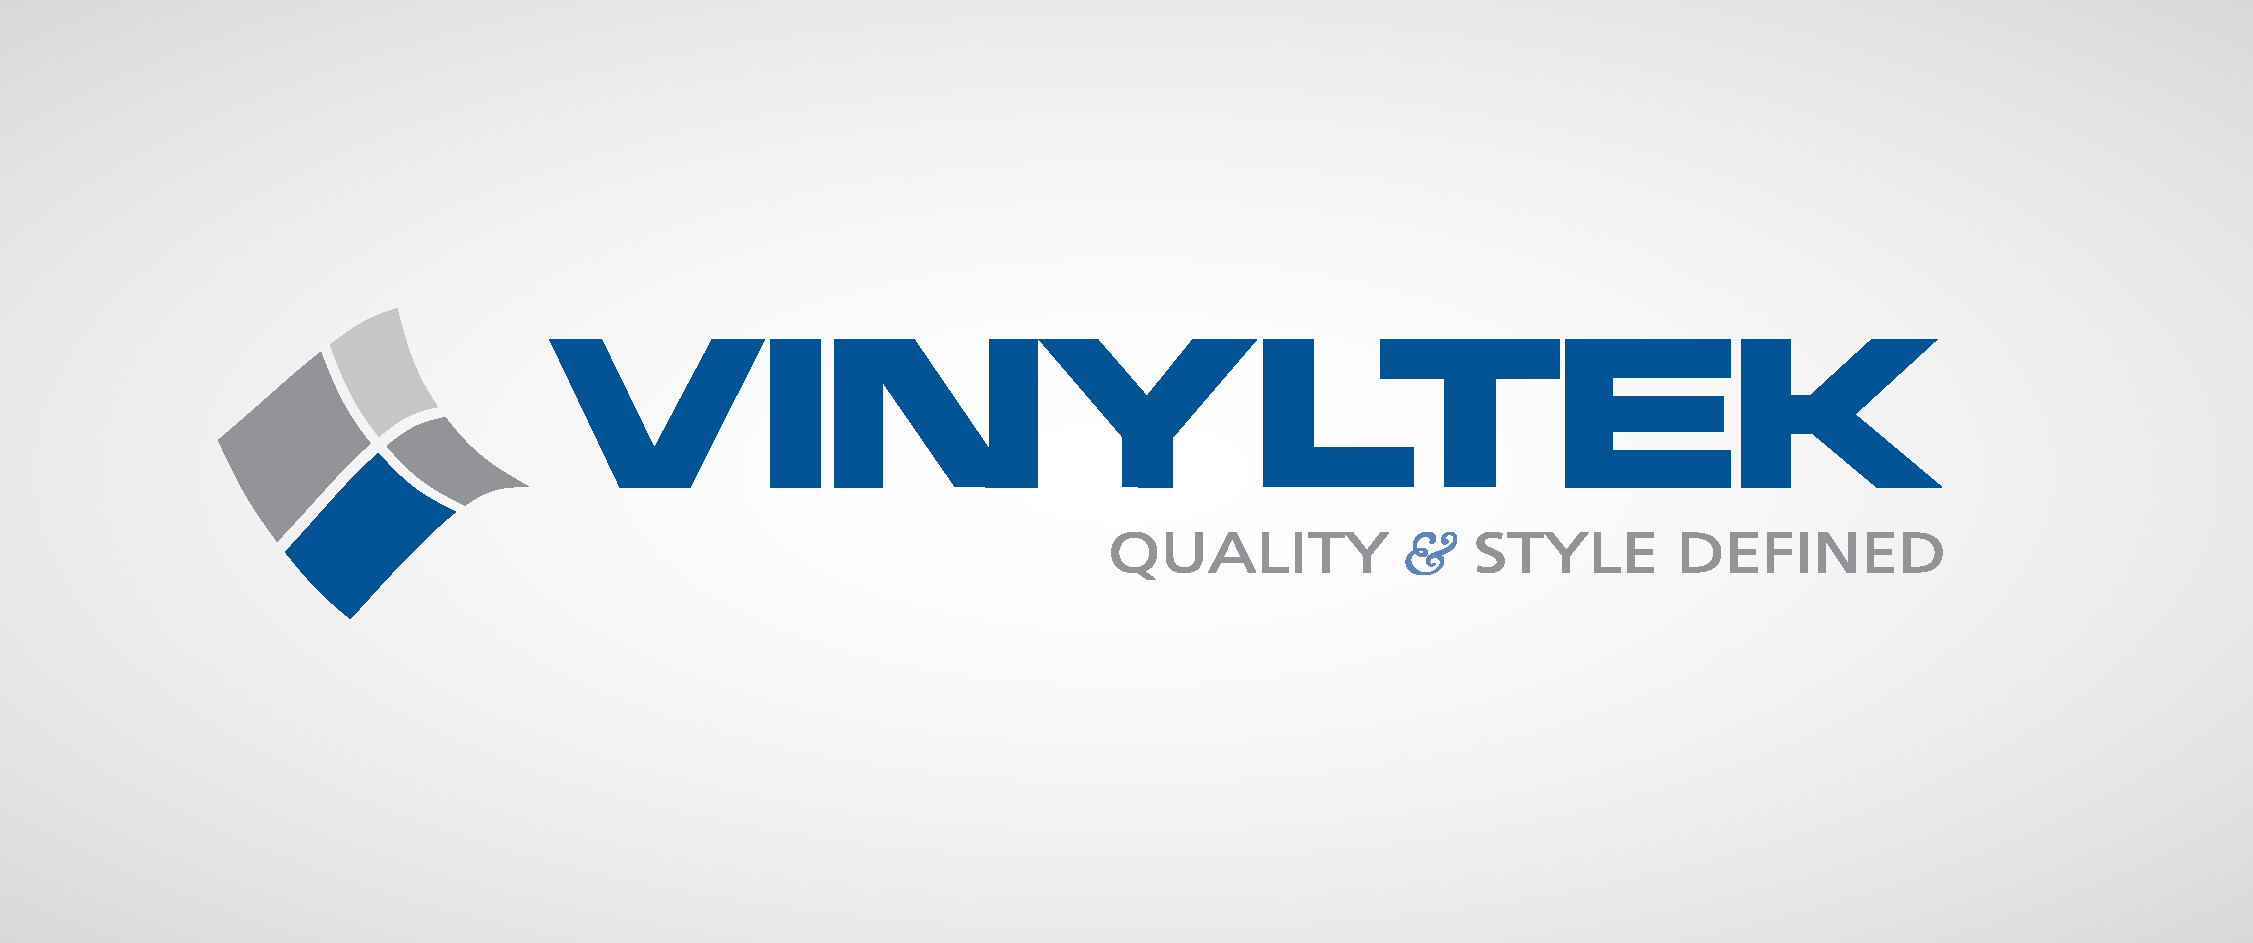 vinyltek-website-logo-copy.jpg